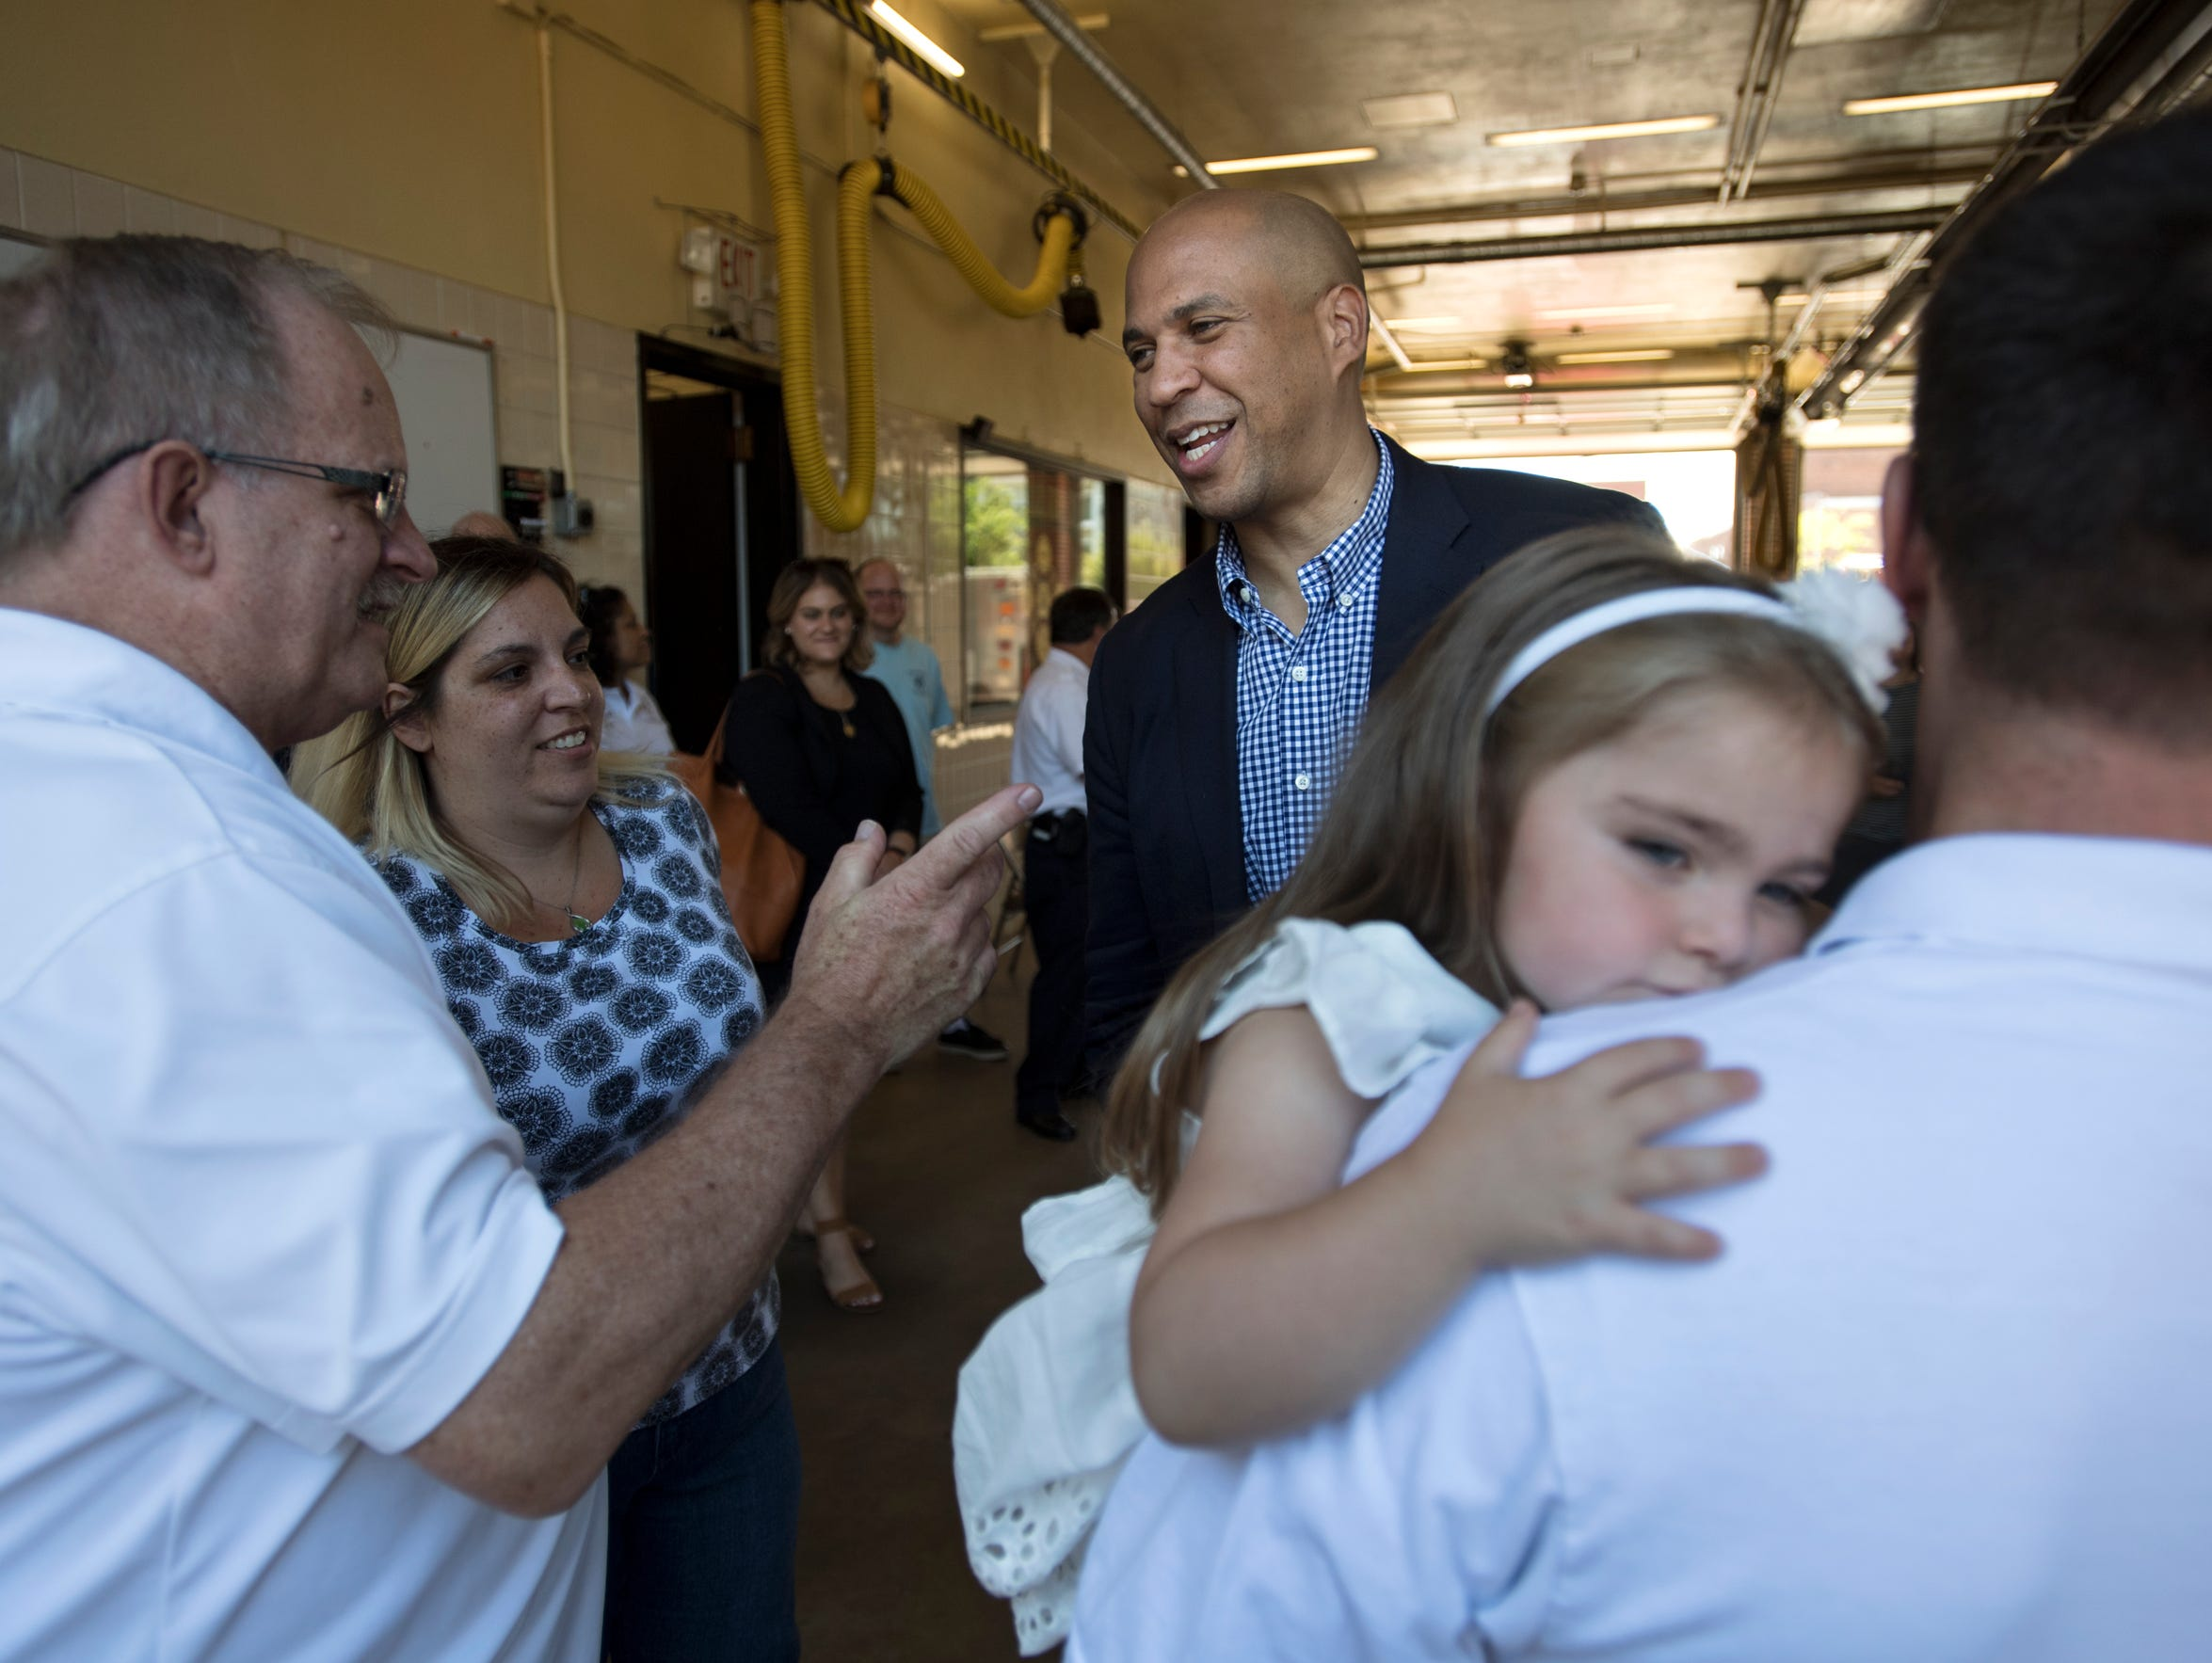 Senator Cory Booker talks with supporters at the Somerville